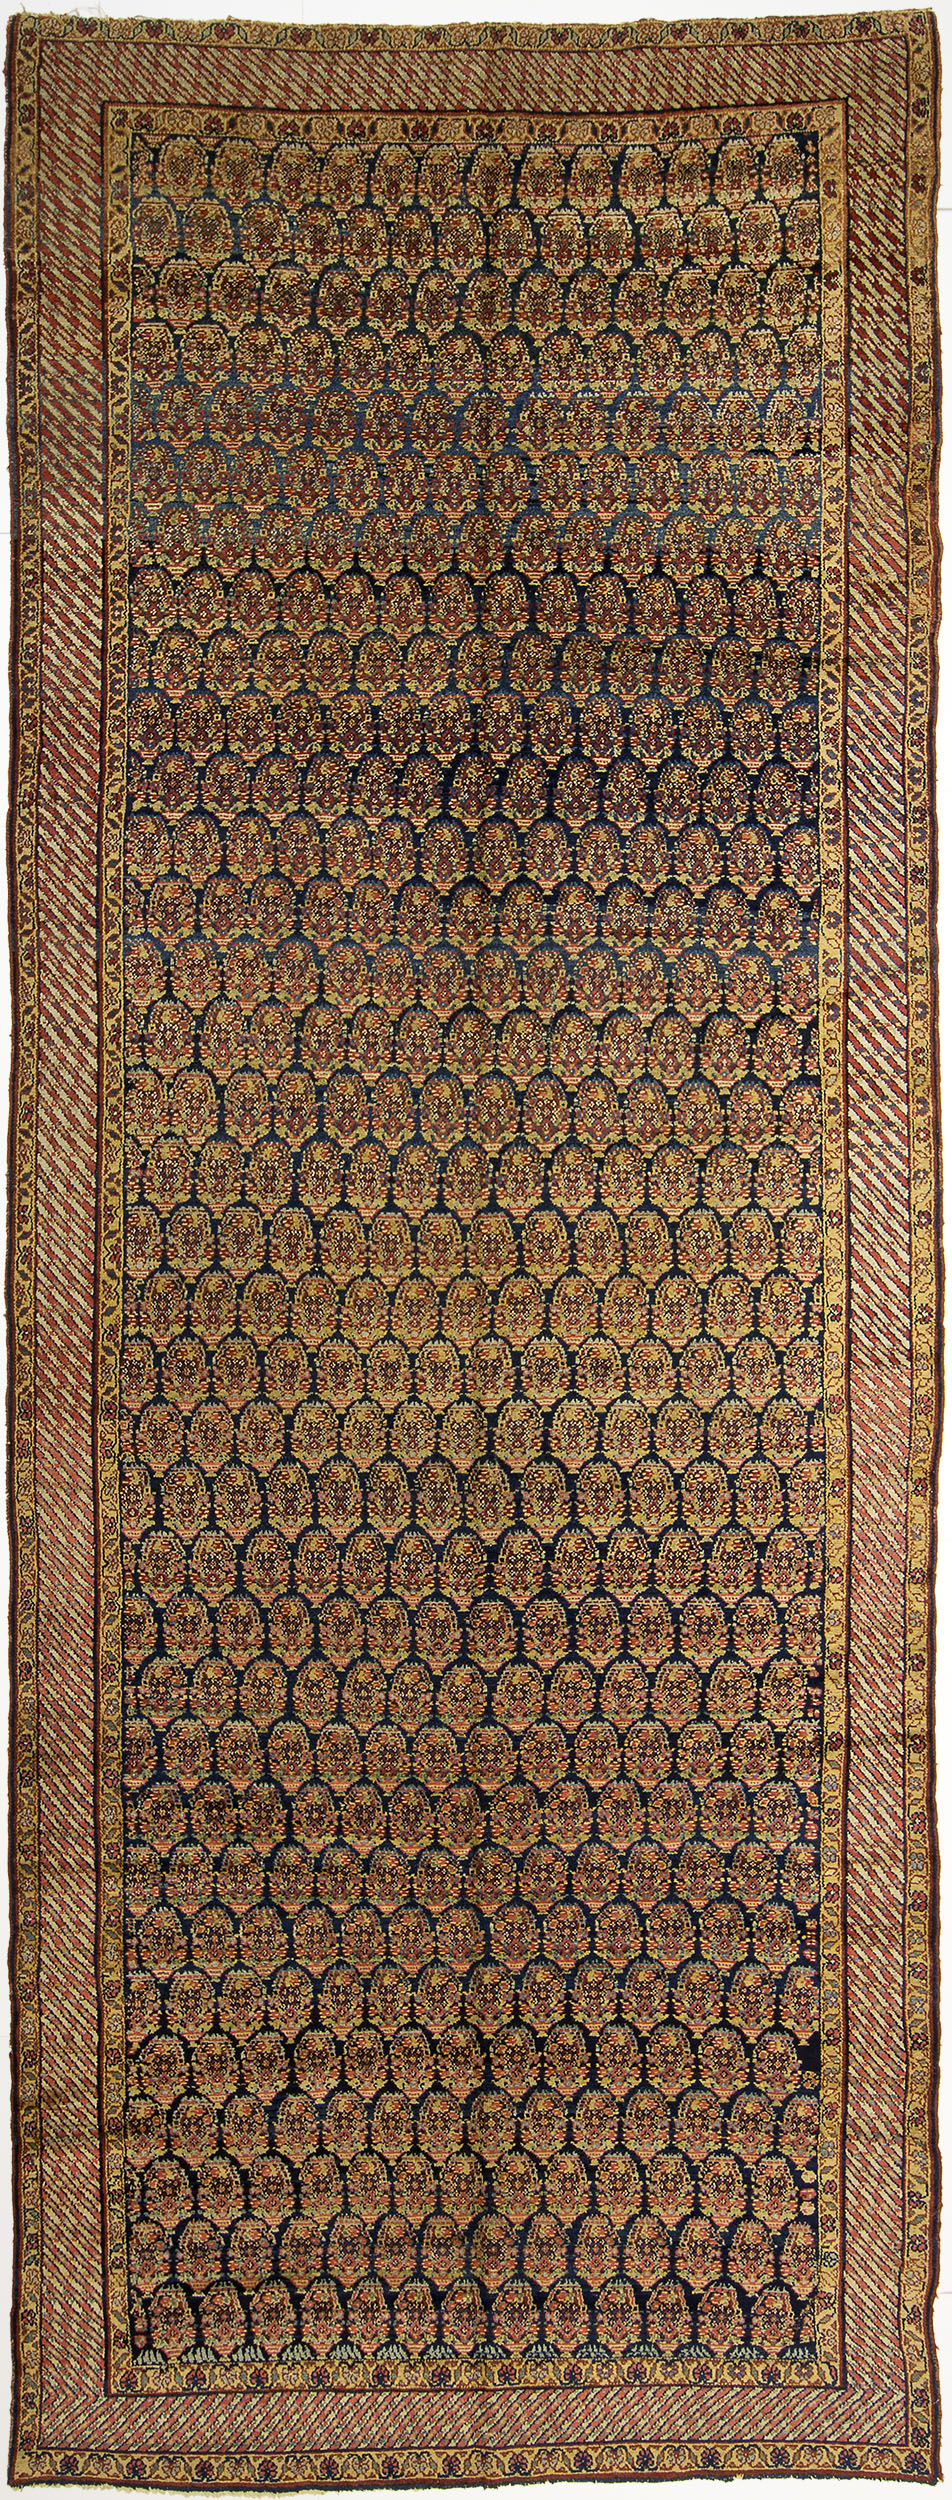 "Sehna Kurd Gallery Carpet 16' 3"" x 6' 2"""